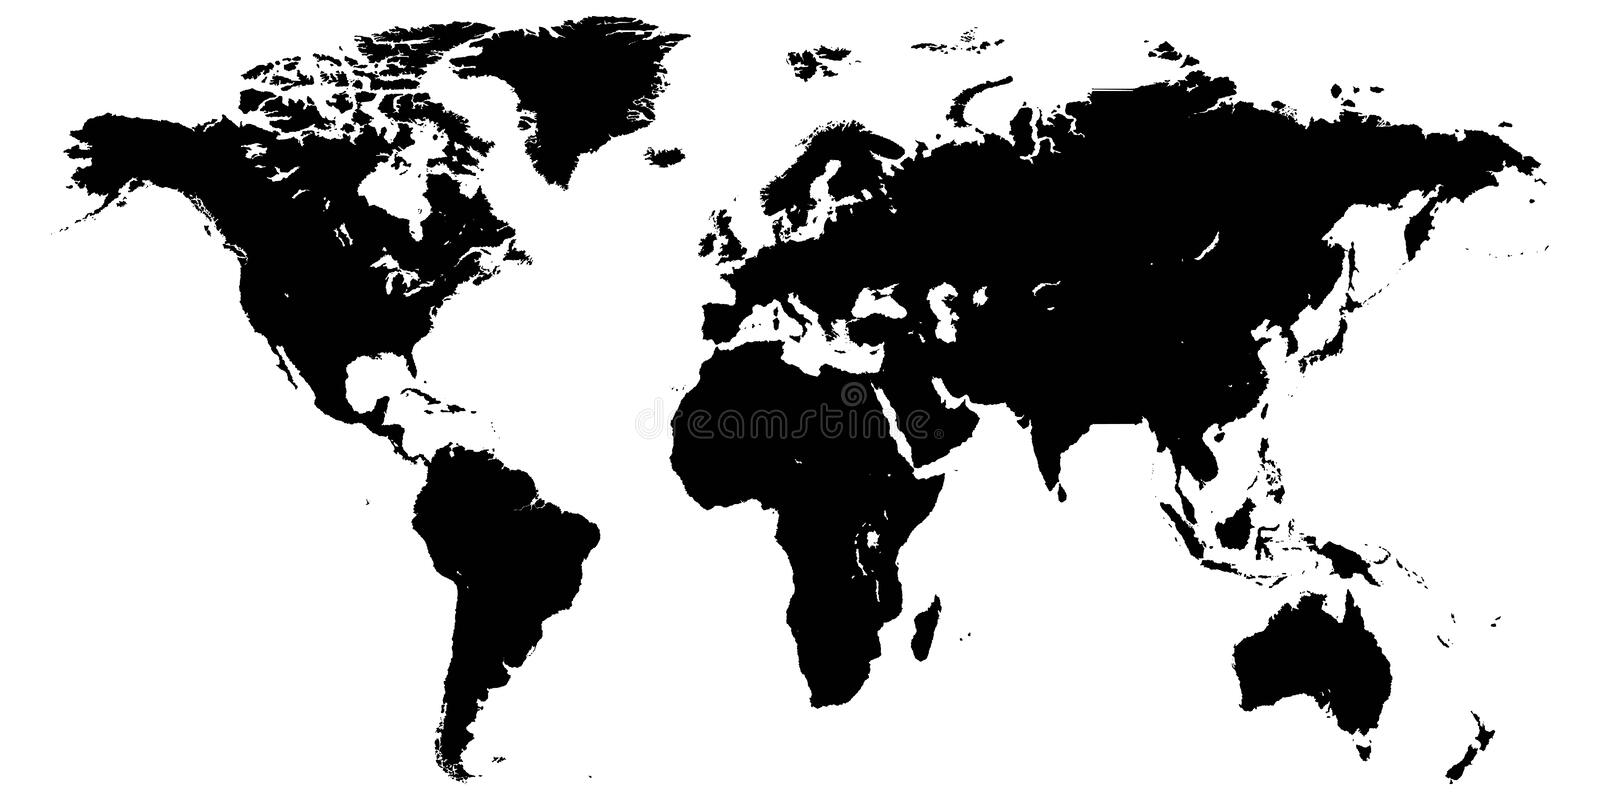 Template world map planet earth silhouettes of continents and download template world map planet earth silhouettes of continents and islands high detail world gumiabroncs